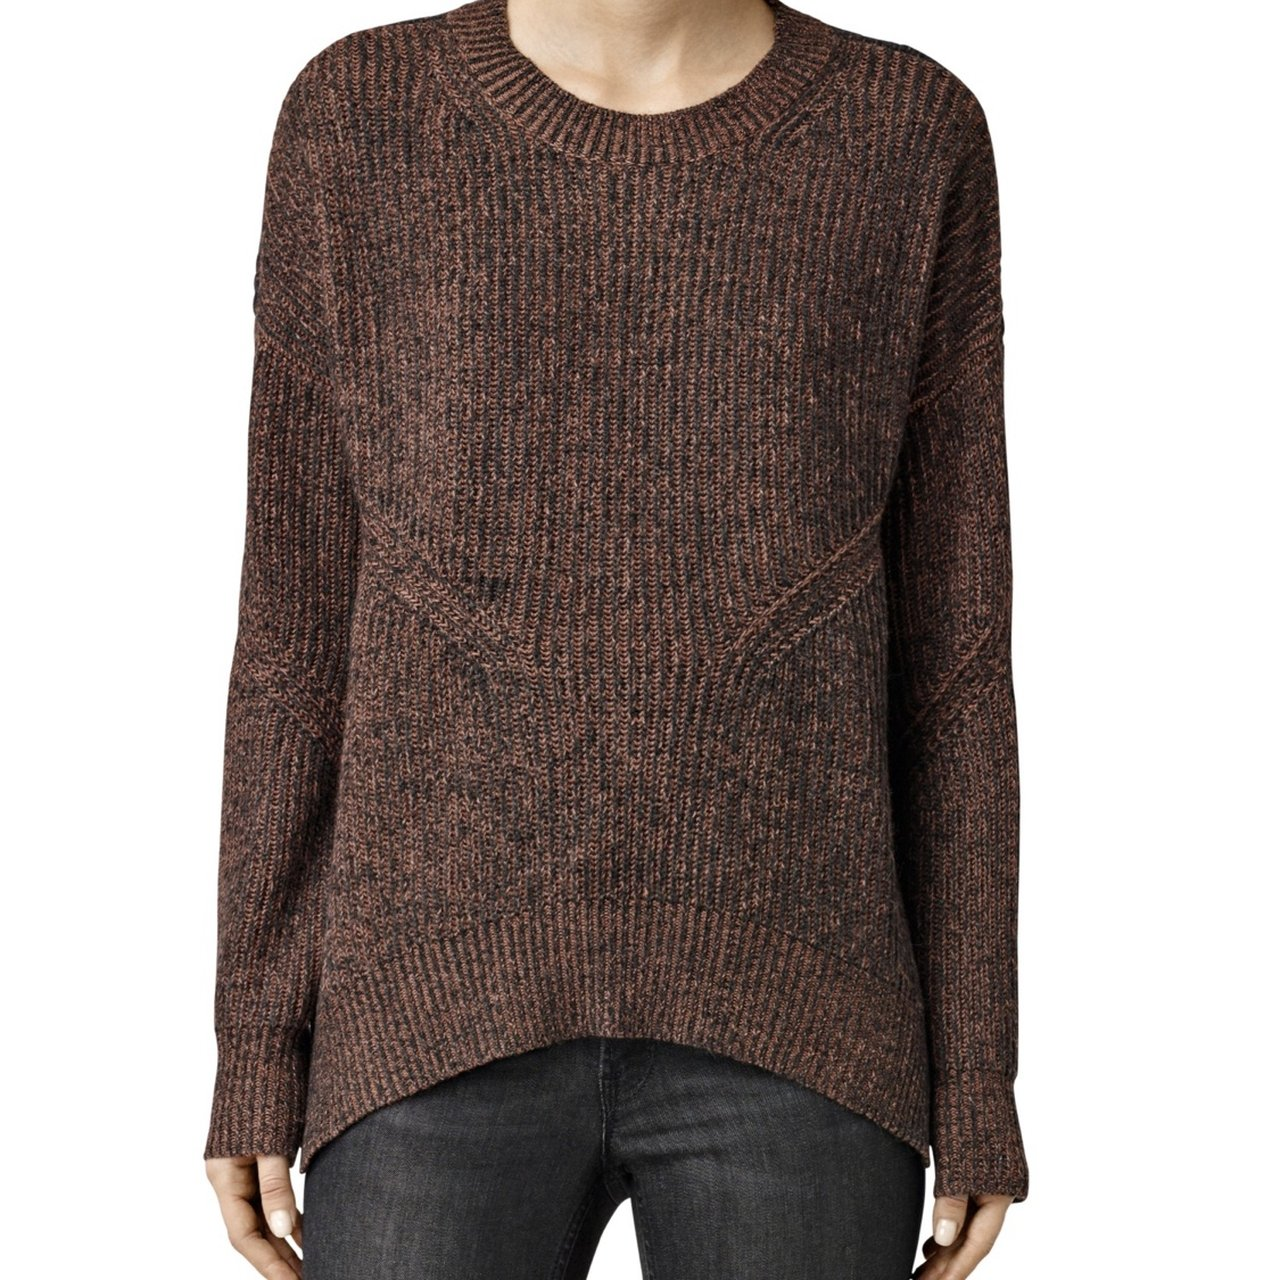 f036ae5c11 ALLSAINTS VELO KNIT SWEATER SIZE SMALL (but is baggy so can - Depop